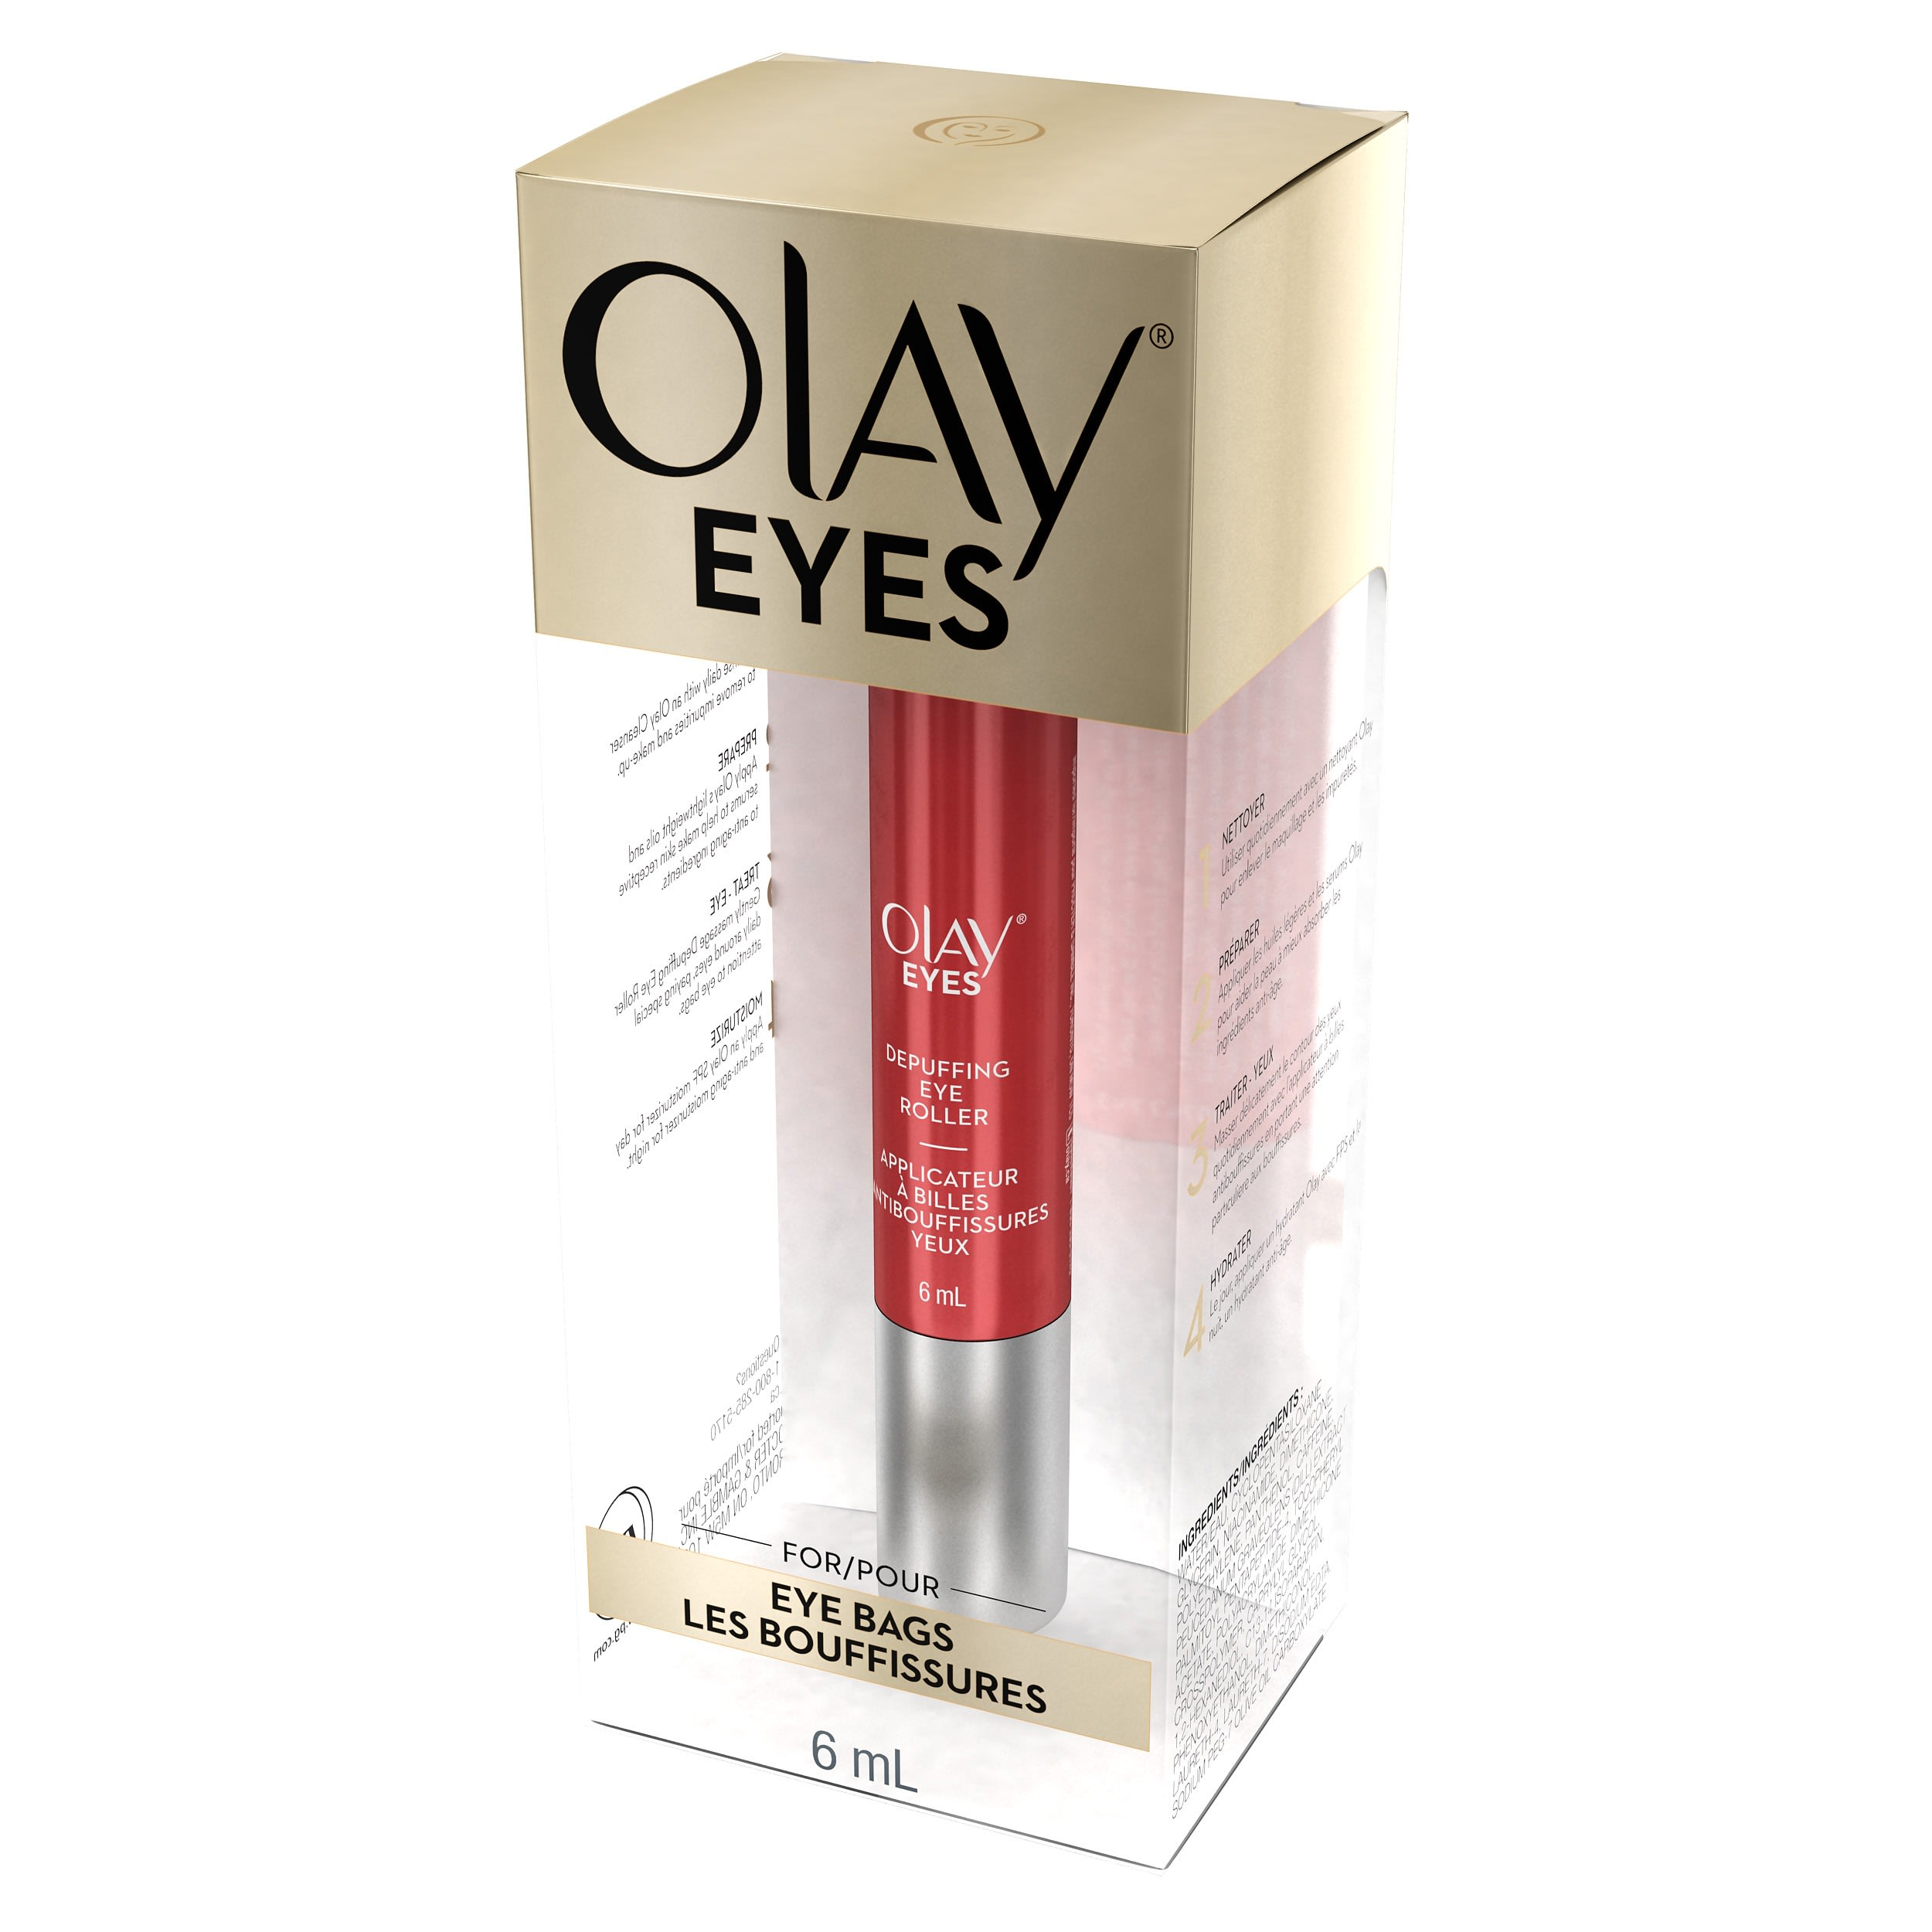 olay_eye_depuffing_eye_roller-2